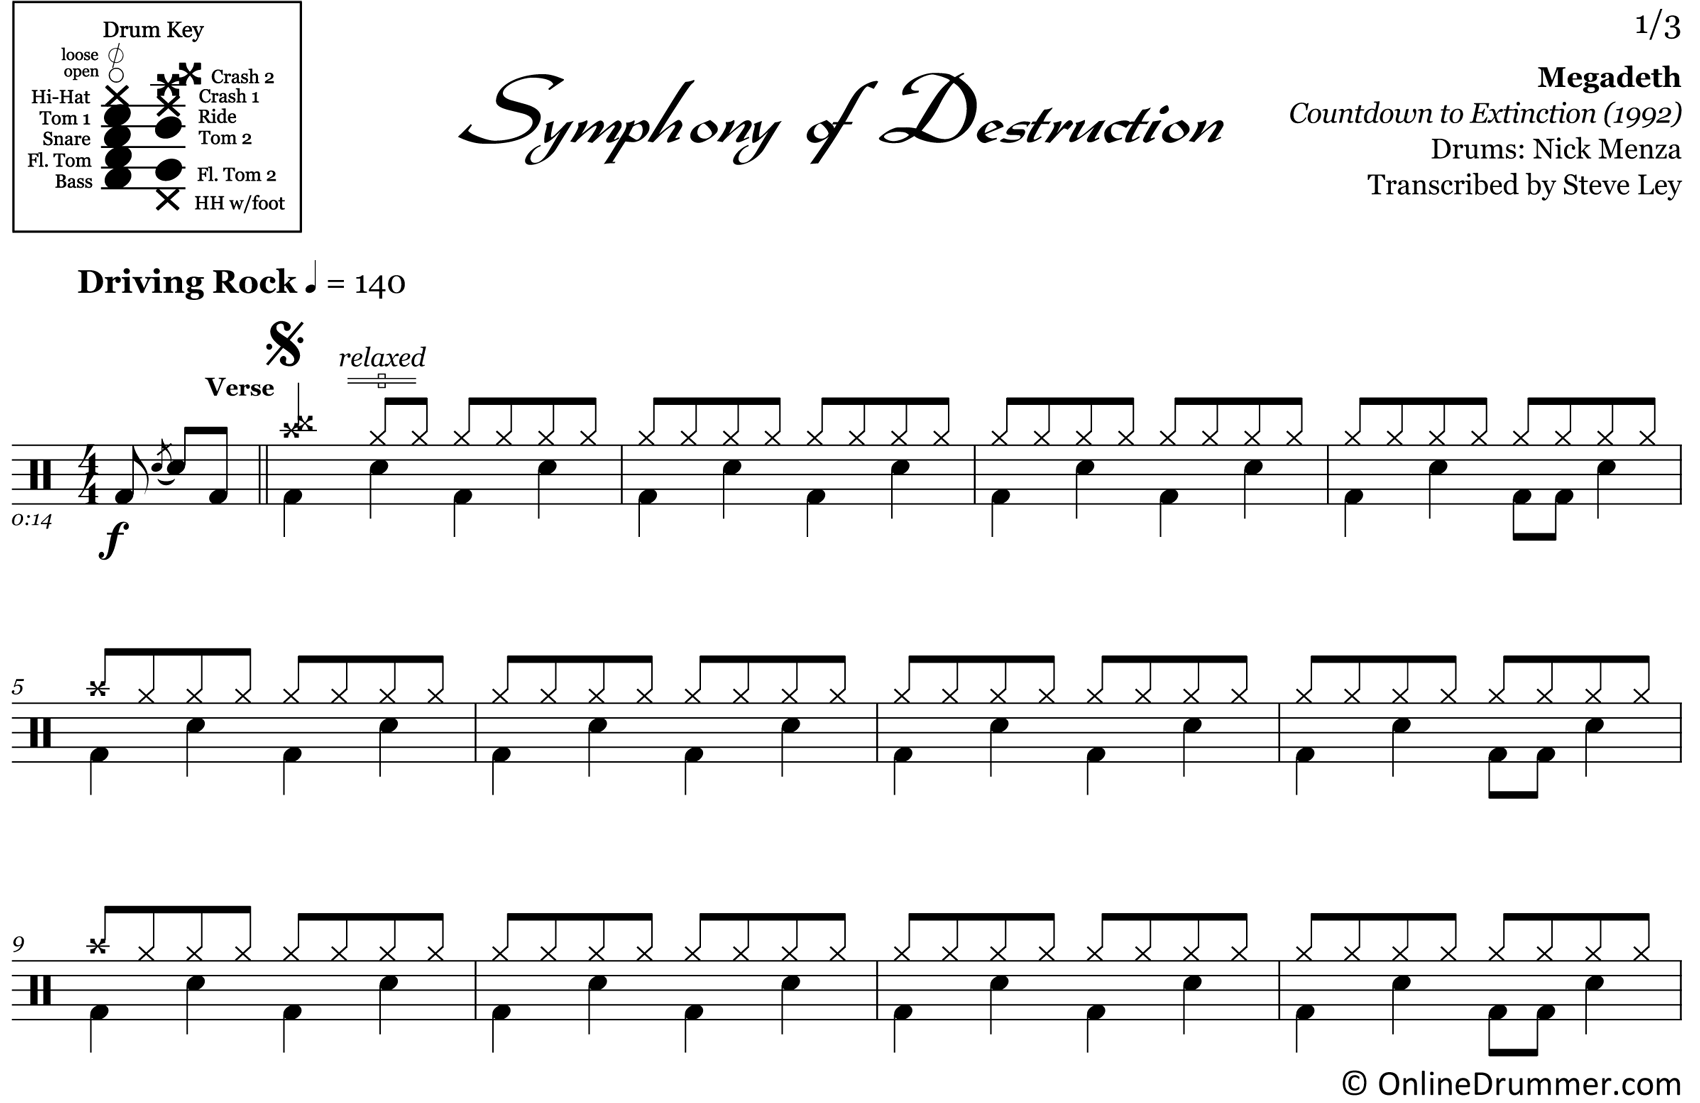 Symphony of Destruction - Megadeth - Drum Sheet Music